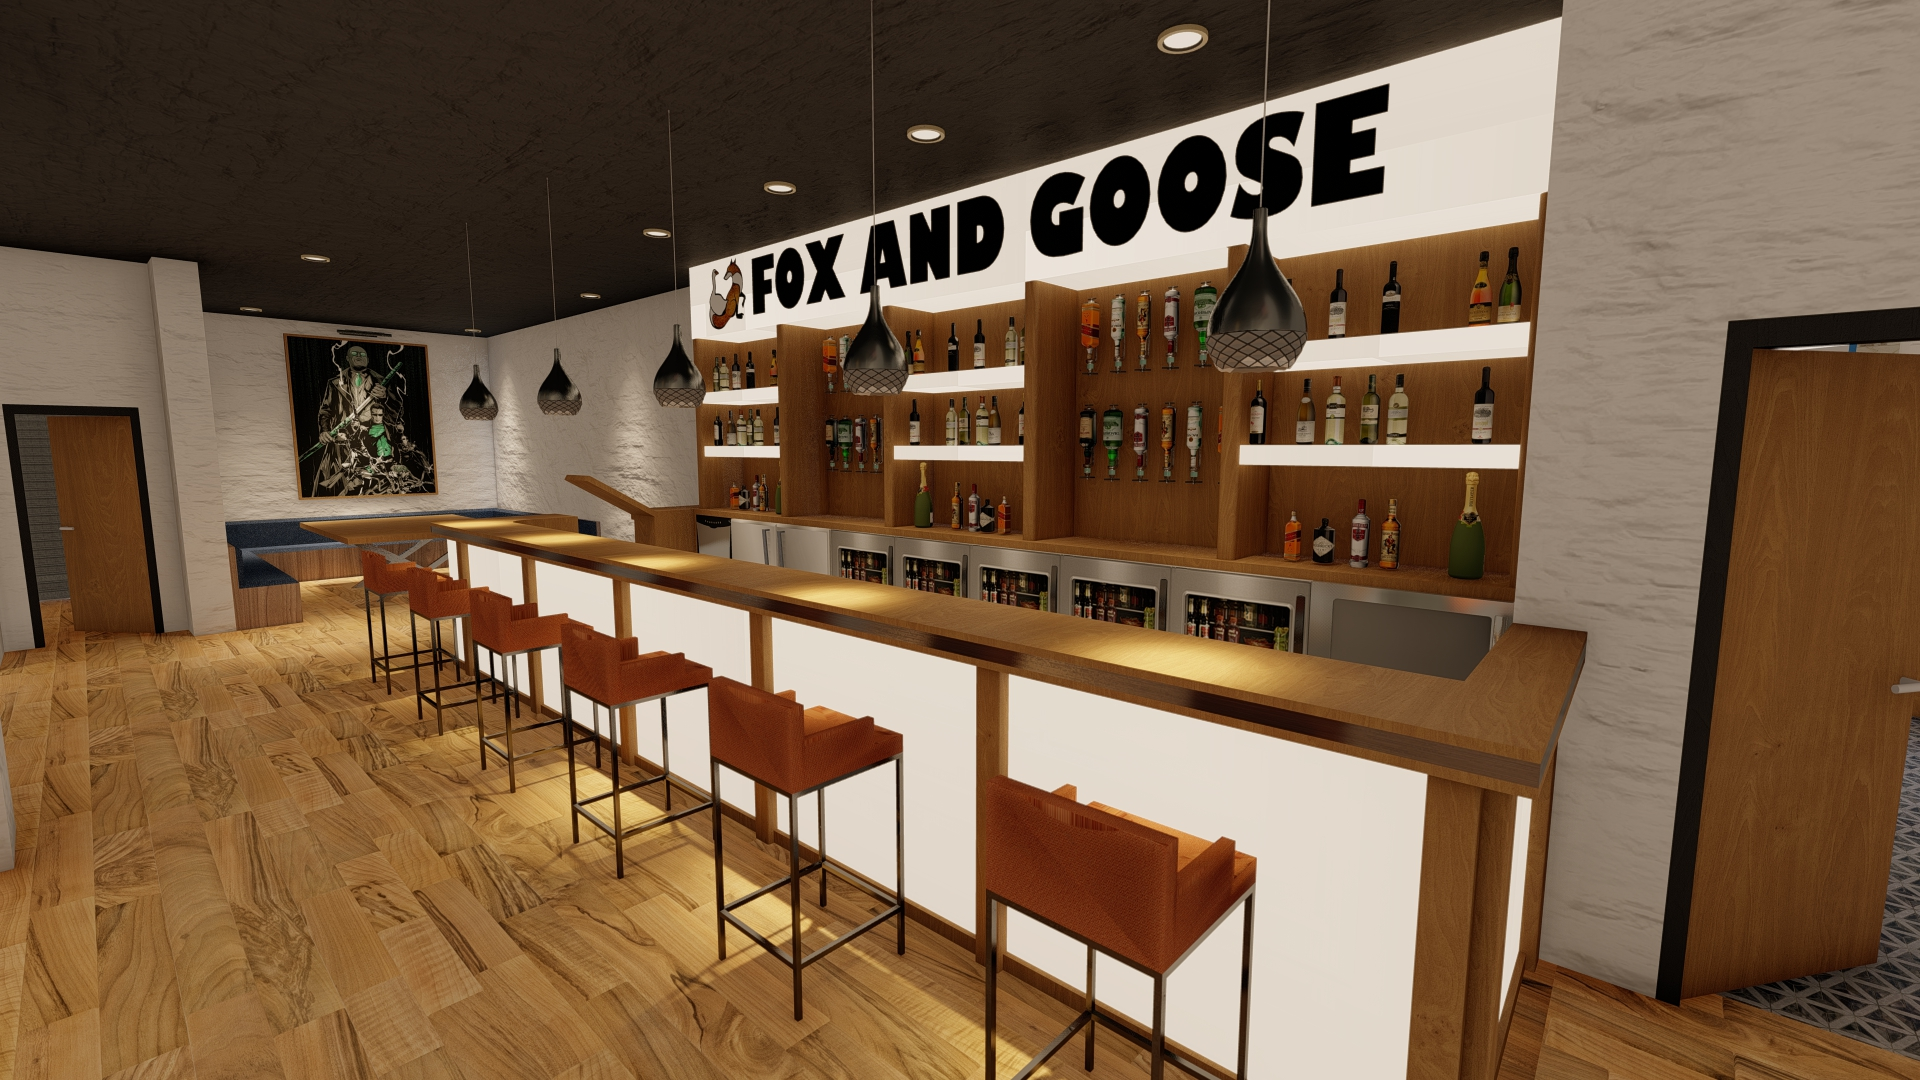 An artist's impression of the transformed The Fox & Goose on Cable Street in Southport